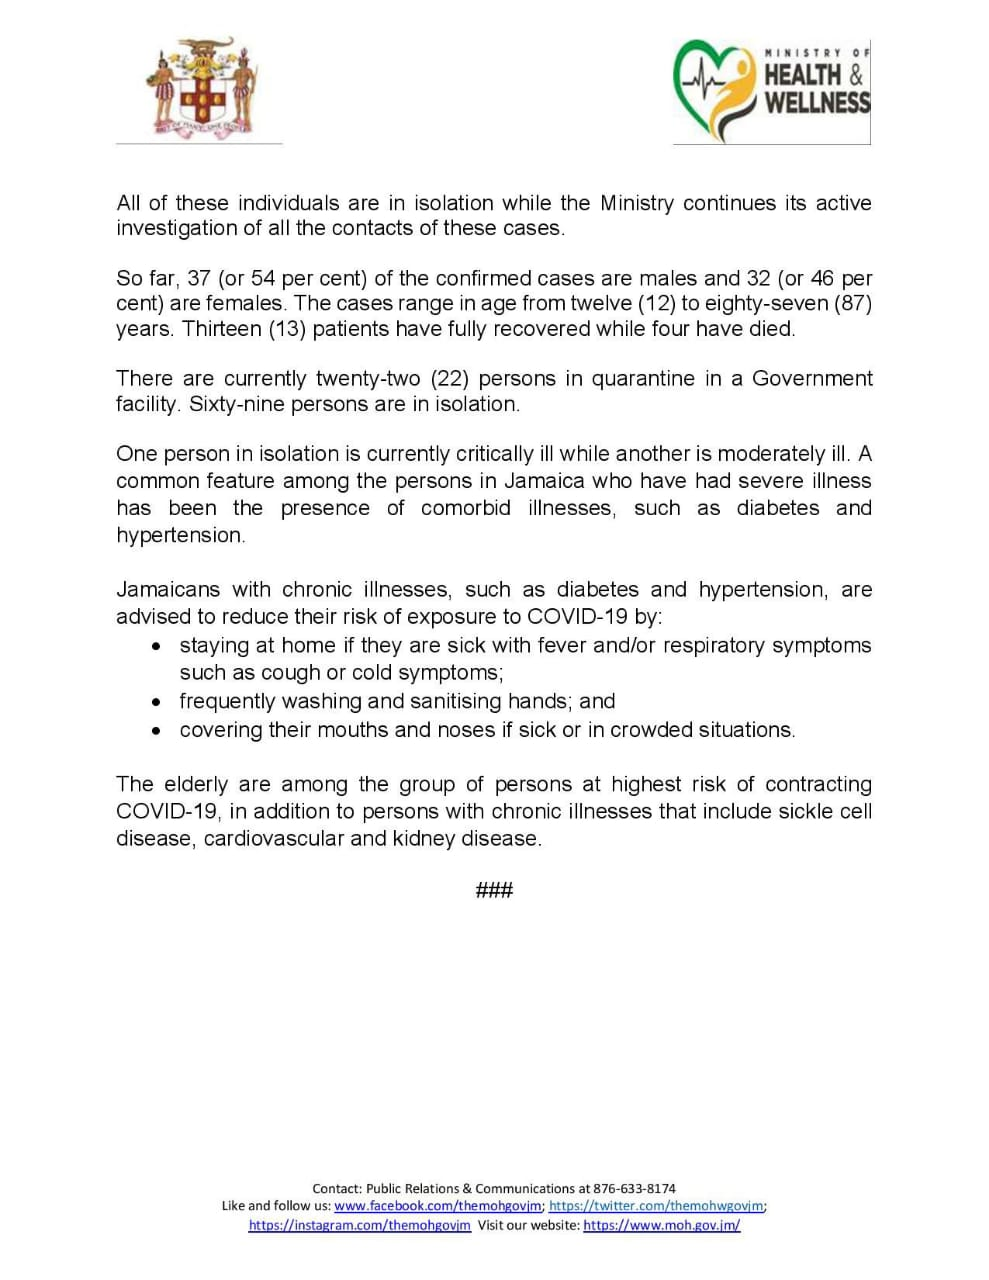 69 Confirmed Cases of COVID-19 in Jamaica